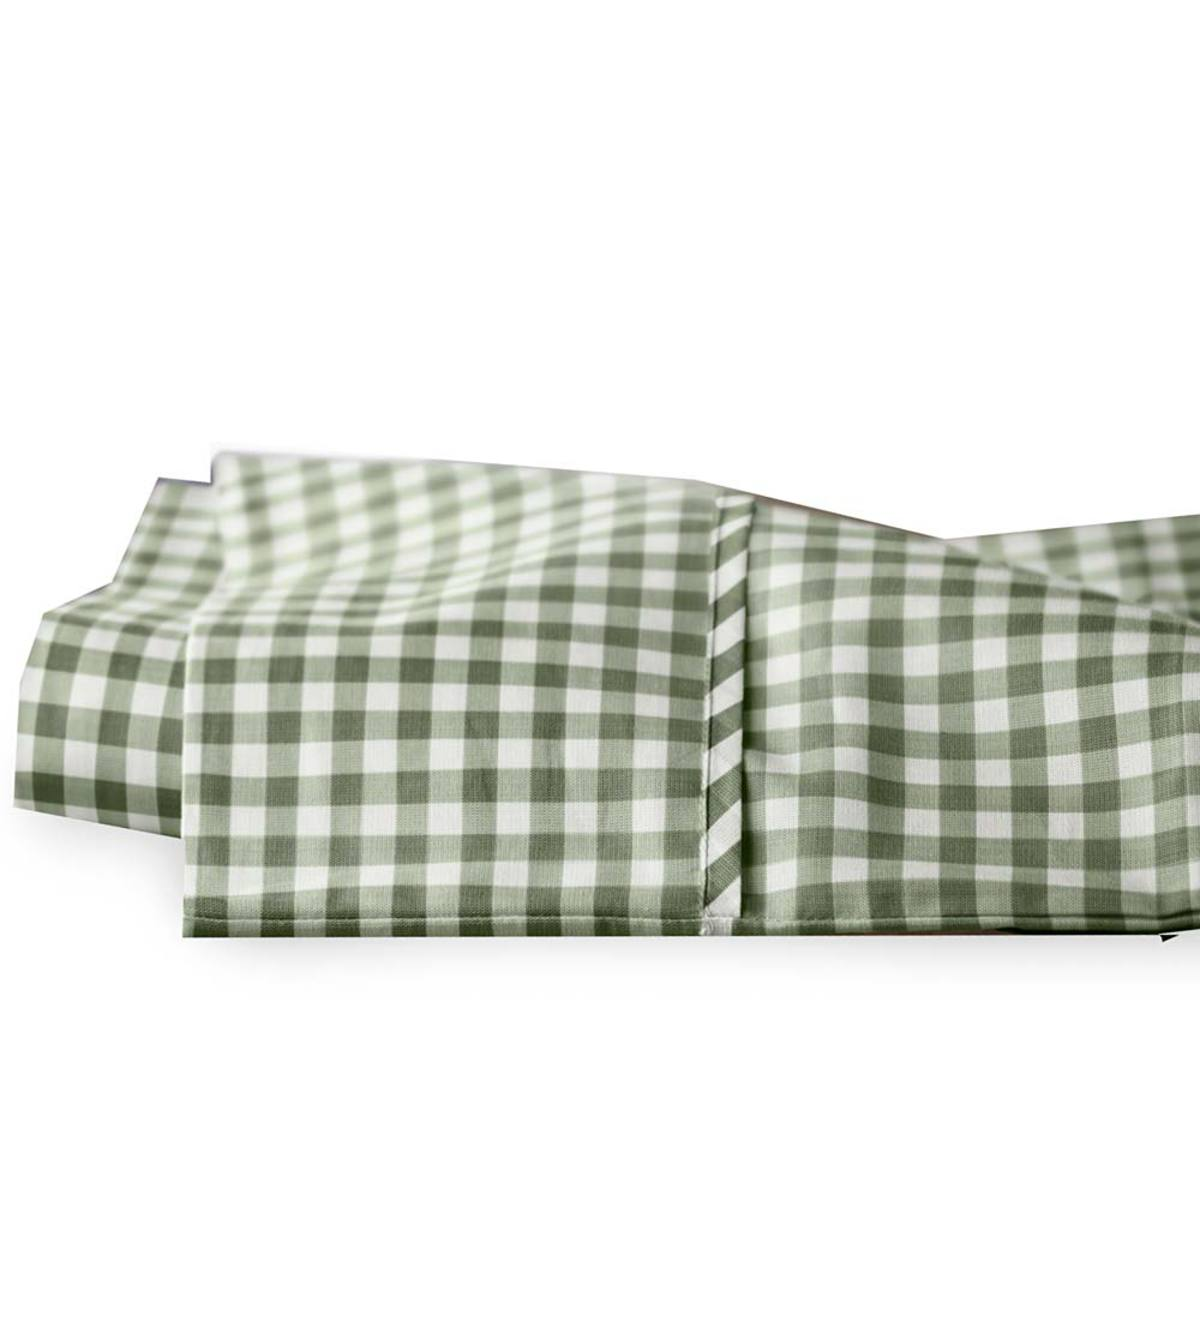 King Gingham Cotton Percale Sheet Set Natural Plowhearth